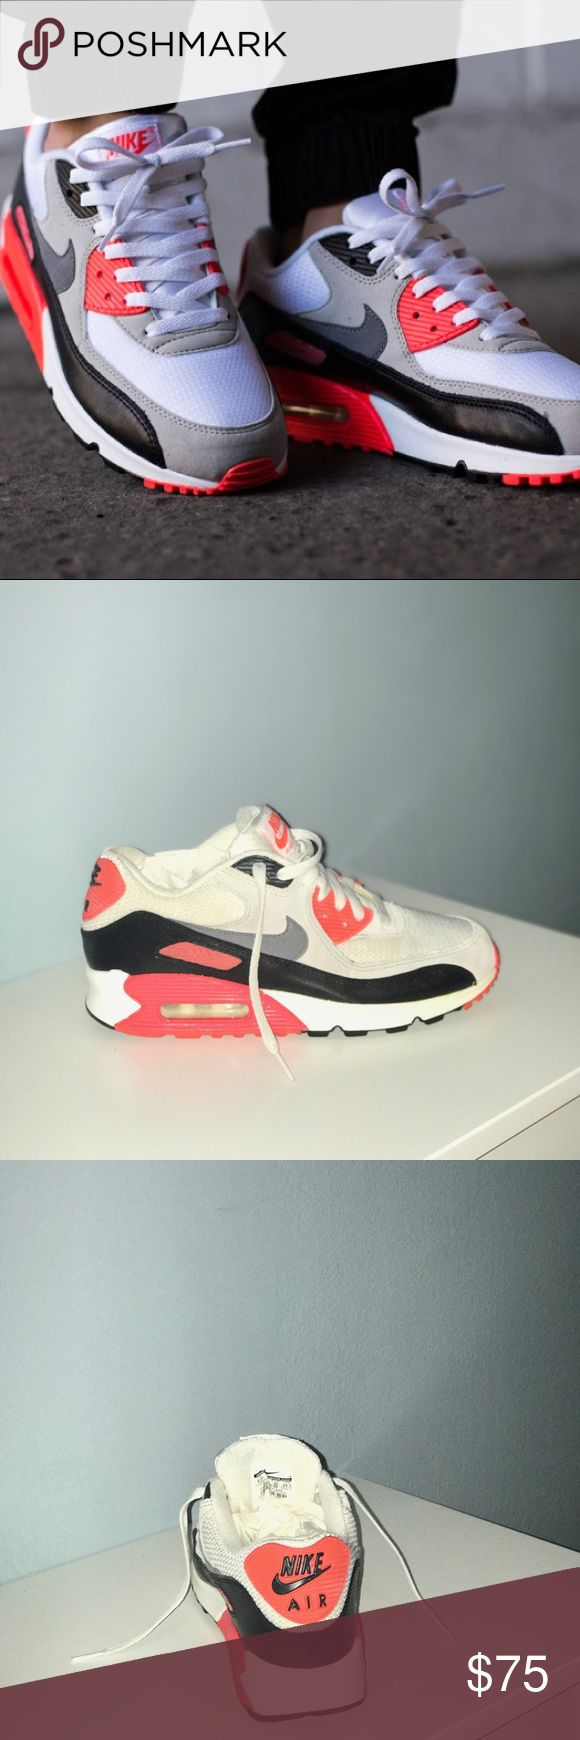 Nike Air Max 90 Infrared Size 6.5 Boys/8 Women Air Max 90 Nike Infrared Boys 6.5/Women 8 Nike Shoes Sneakers